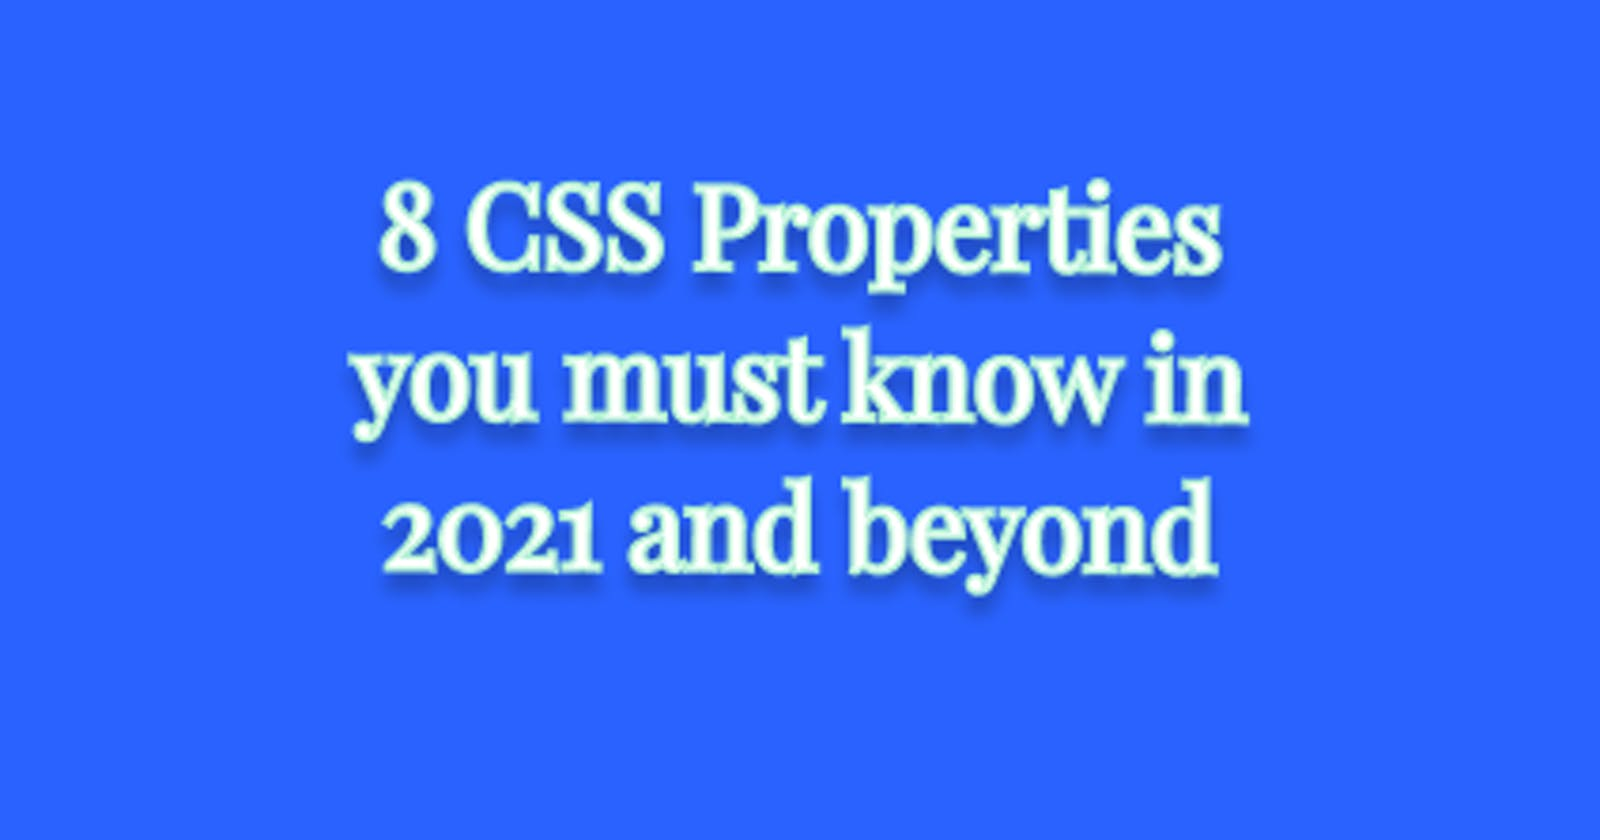 8 CSS Properties you must know in 2021 and beyond